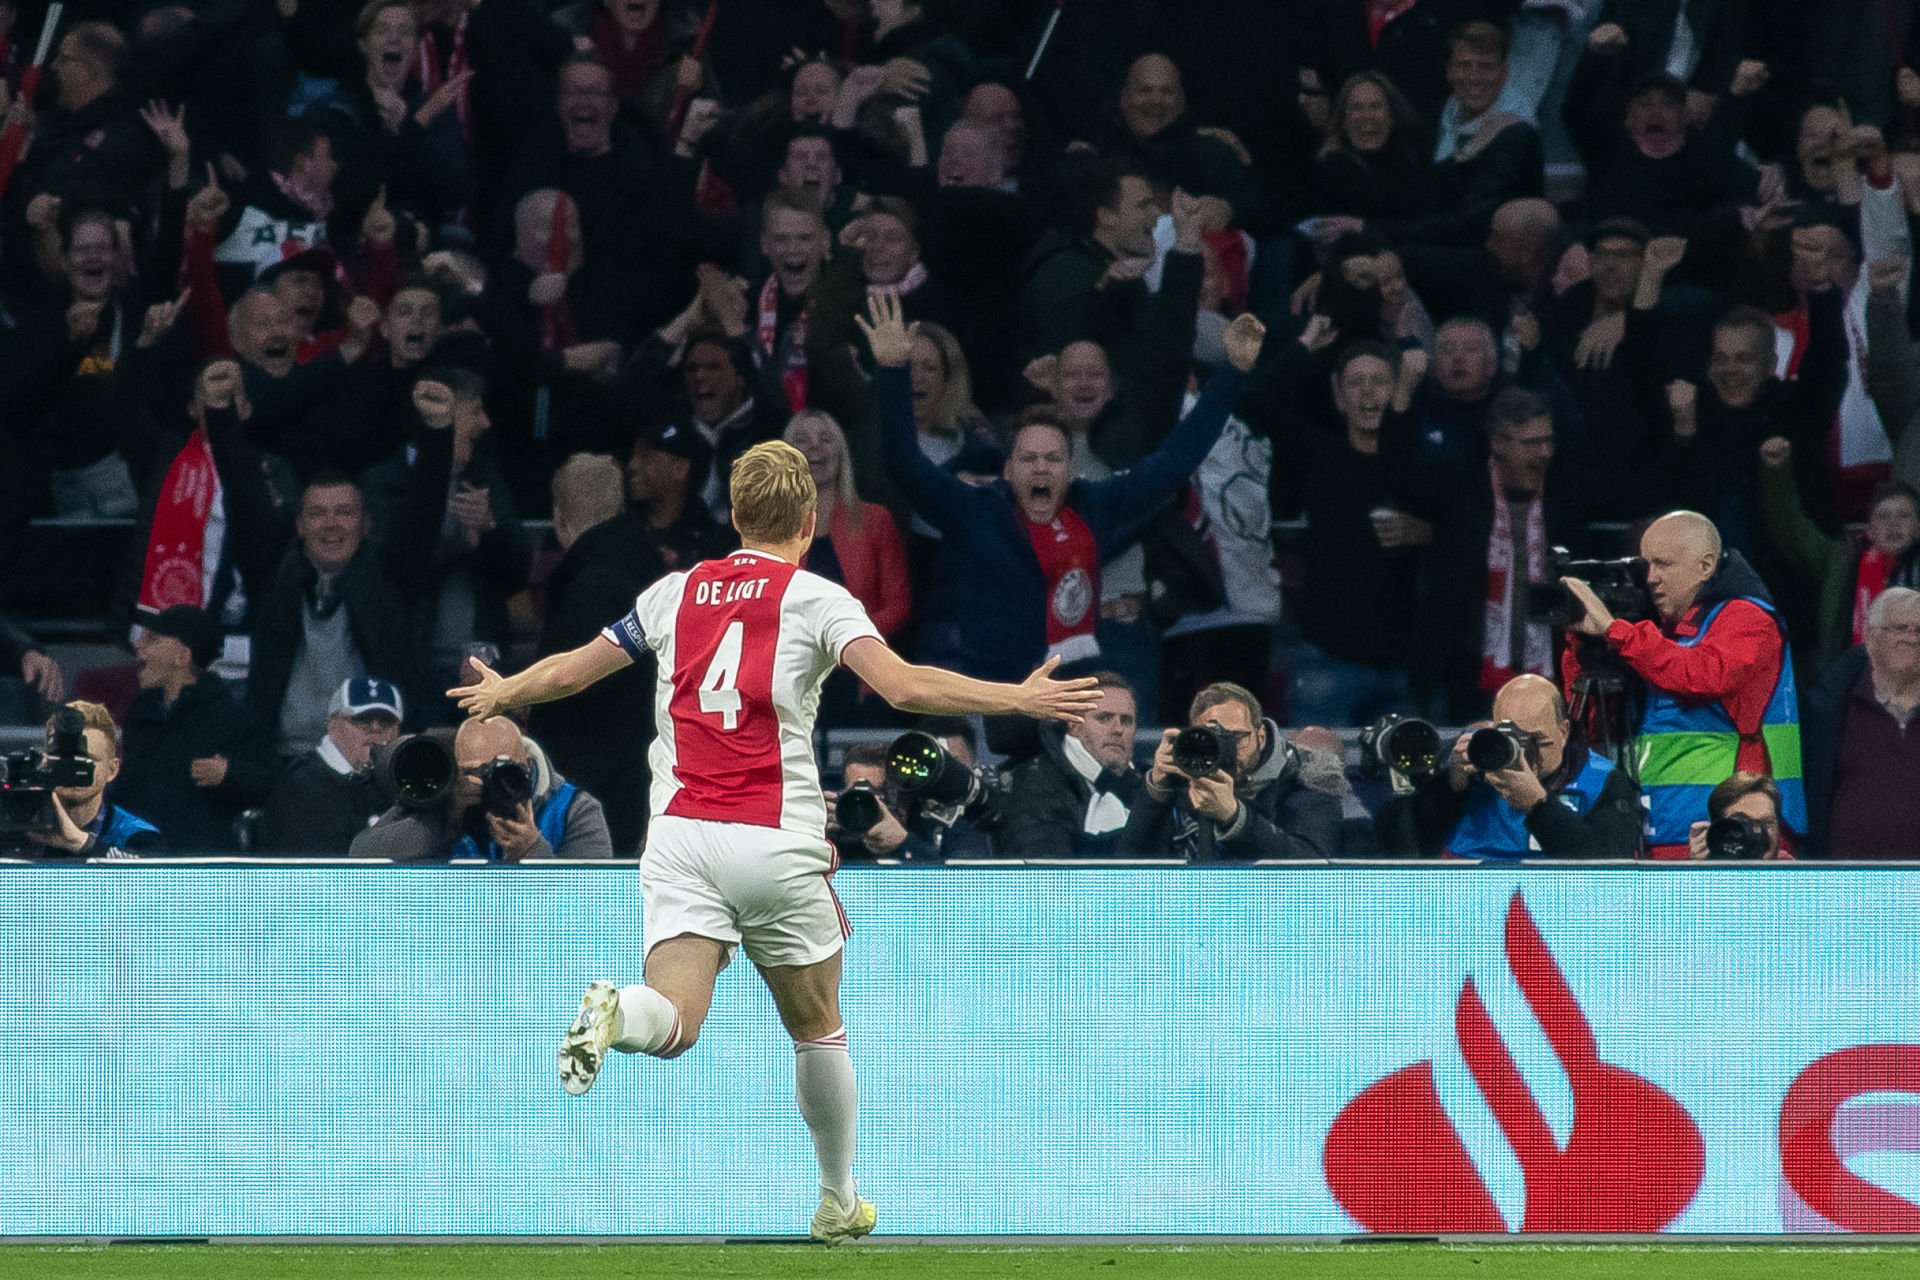 08.05.2019, Amsterdam Arena, Amsterdam, NED, UEFA CL, Ajax Amsterdam vs Tottenham Hotspur, Halbfinale, Rüclspiel, im Bild Matthijs de Ligt of Ajax Amsterdam celebrates scoring their first goal // Matthijs de Ligt of Ajax Amsterdam celebrates scoring their first goal during the UEFA Champions League halffinals, 2nd leg match between Ajax Amsterdam and Tottenham Hotspur at the Amsterdam Arena in Amsterdam, Netherlands on 2019/05/08. EXPA Pictures © 2019, PhotoCredit: EXPA/ Focus Images/ Sjoerd Tullenaar *****ATTENTION - for AUT, GER, FRA, ITA, SUI, POL, CRO, SLO only***** PILKA NOZNA SEZON 2018/2019 LIGA MISTRZOW FOT.EXPA/NEWSPIX.PL Austria, Italy, Spain, Slovenia, Serbia, Croatia, Germany, UK, USA and Sweden OUT! --- Newspix.pl *** Local Caption *** www.newspix.pl mail us: info@newspix.pl call us: 0048 022 23 22 222 --- Polish Picture Agency by Ringier Axel Springer Poland